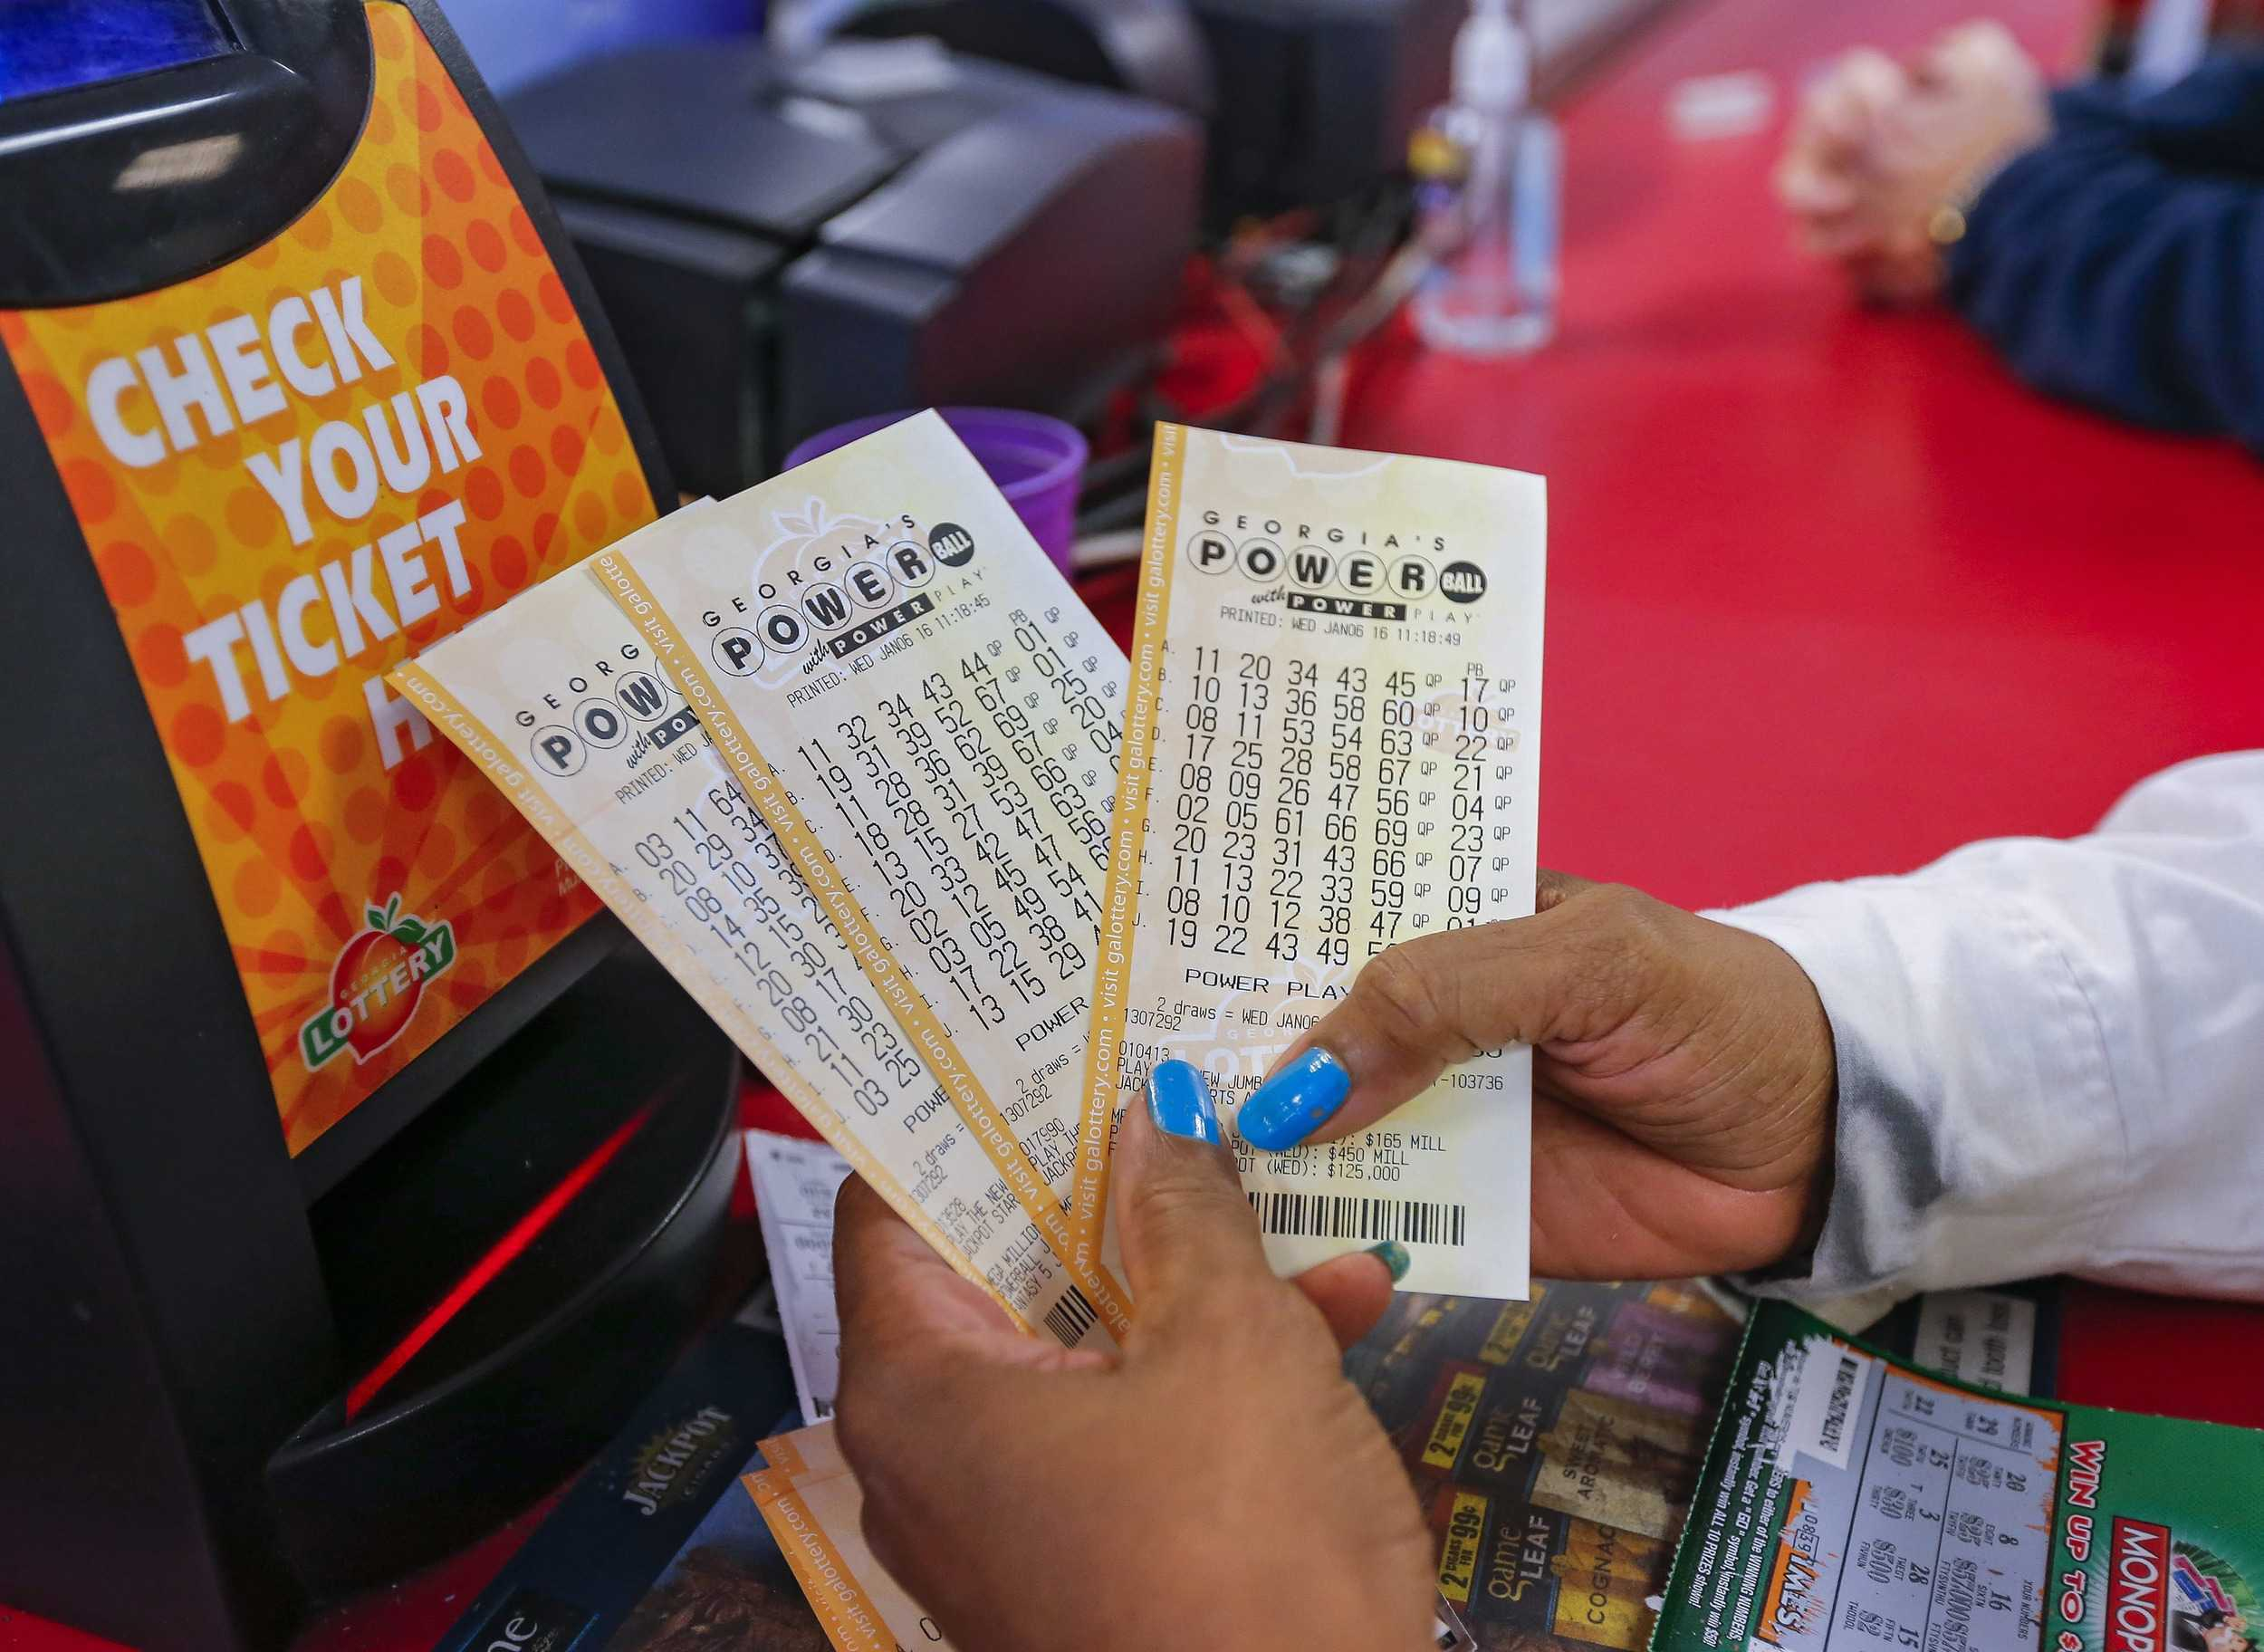 Powerball jackpot to be shared with 3 winners from california, florida and tennessee | daily mail online